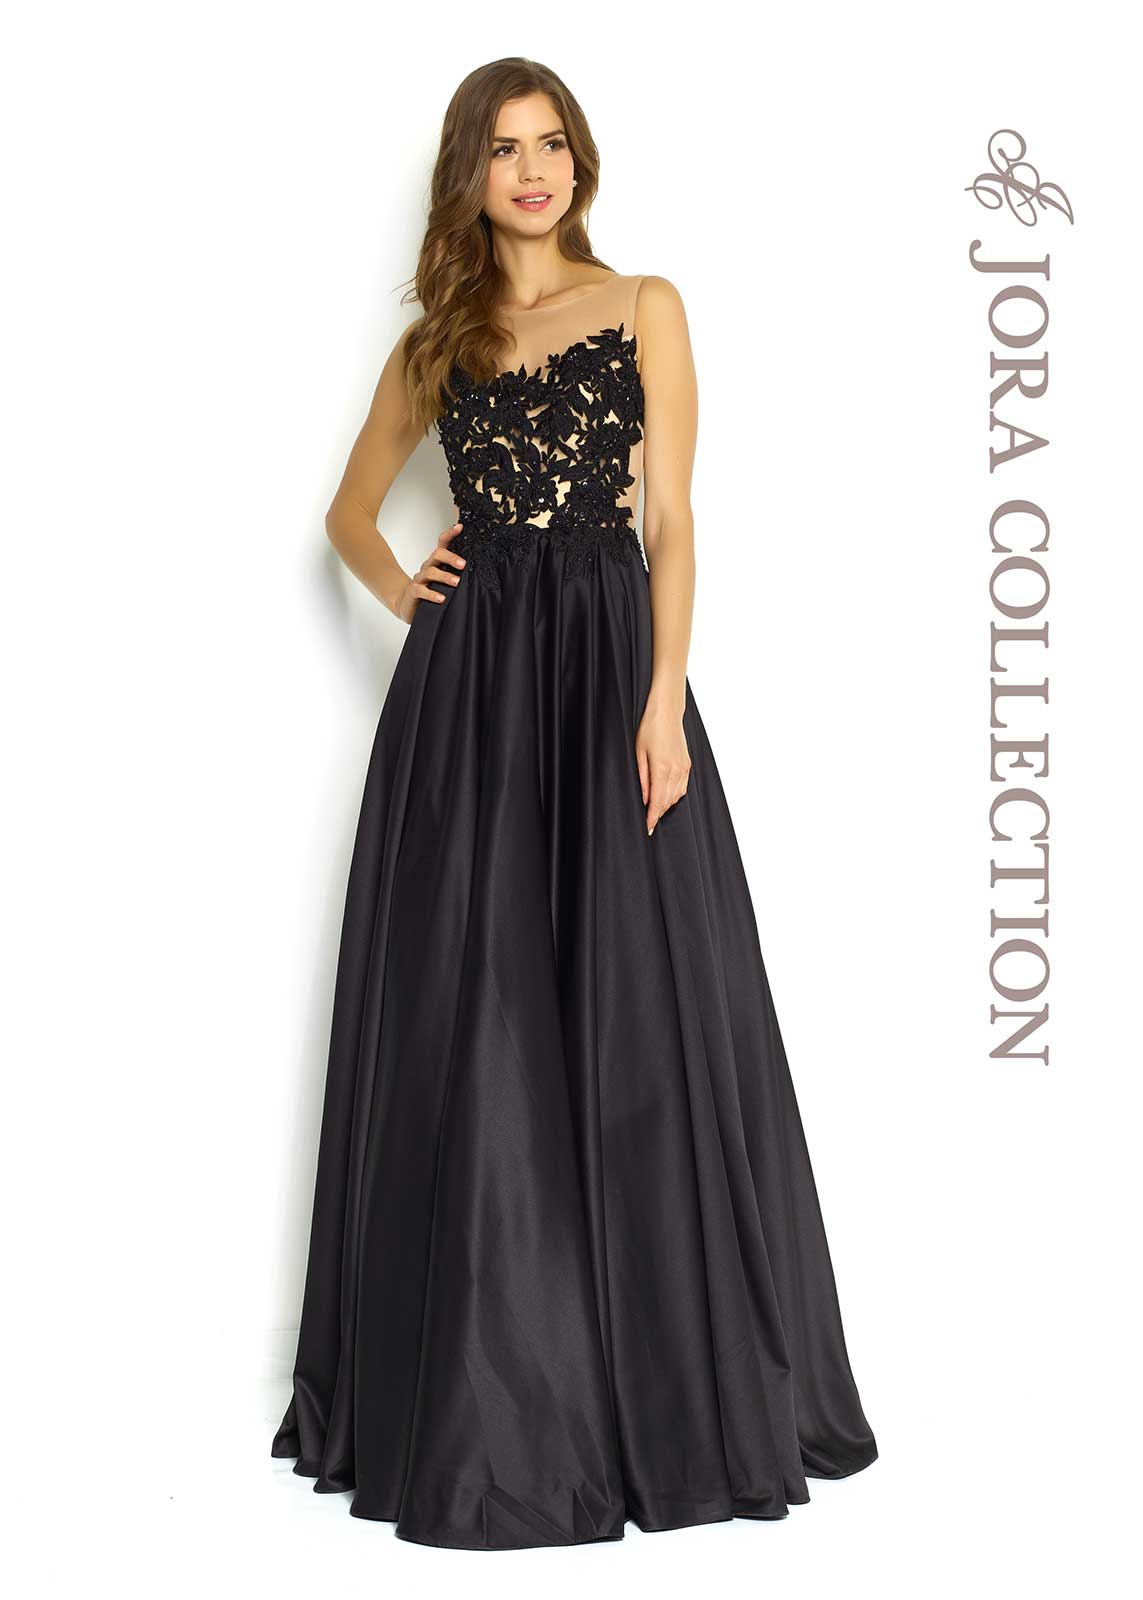 black full length evening gown